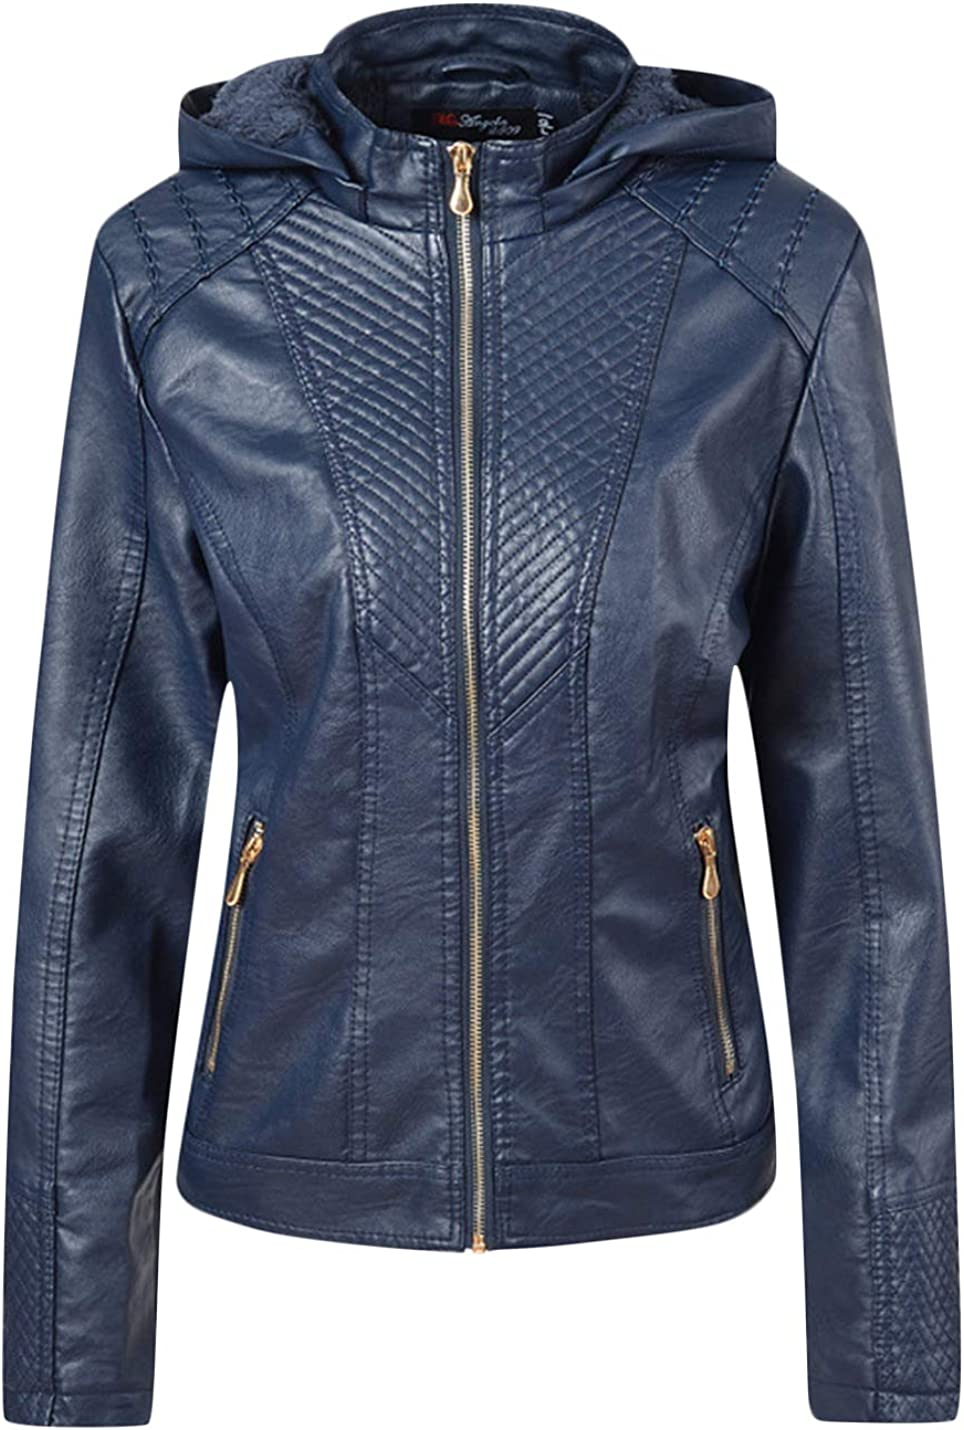 Uaneo Women's Full Zip Up Sherpa Lined Short PU Jacket Coat with Detachable Hood (Dark Blue, X-Small)